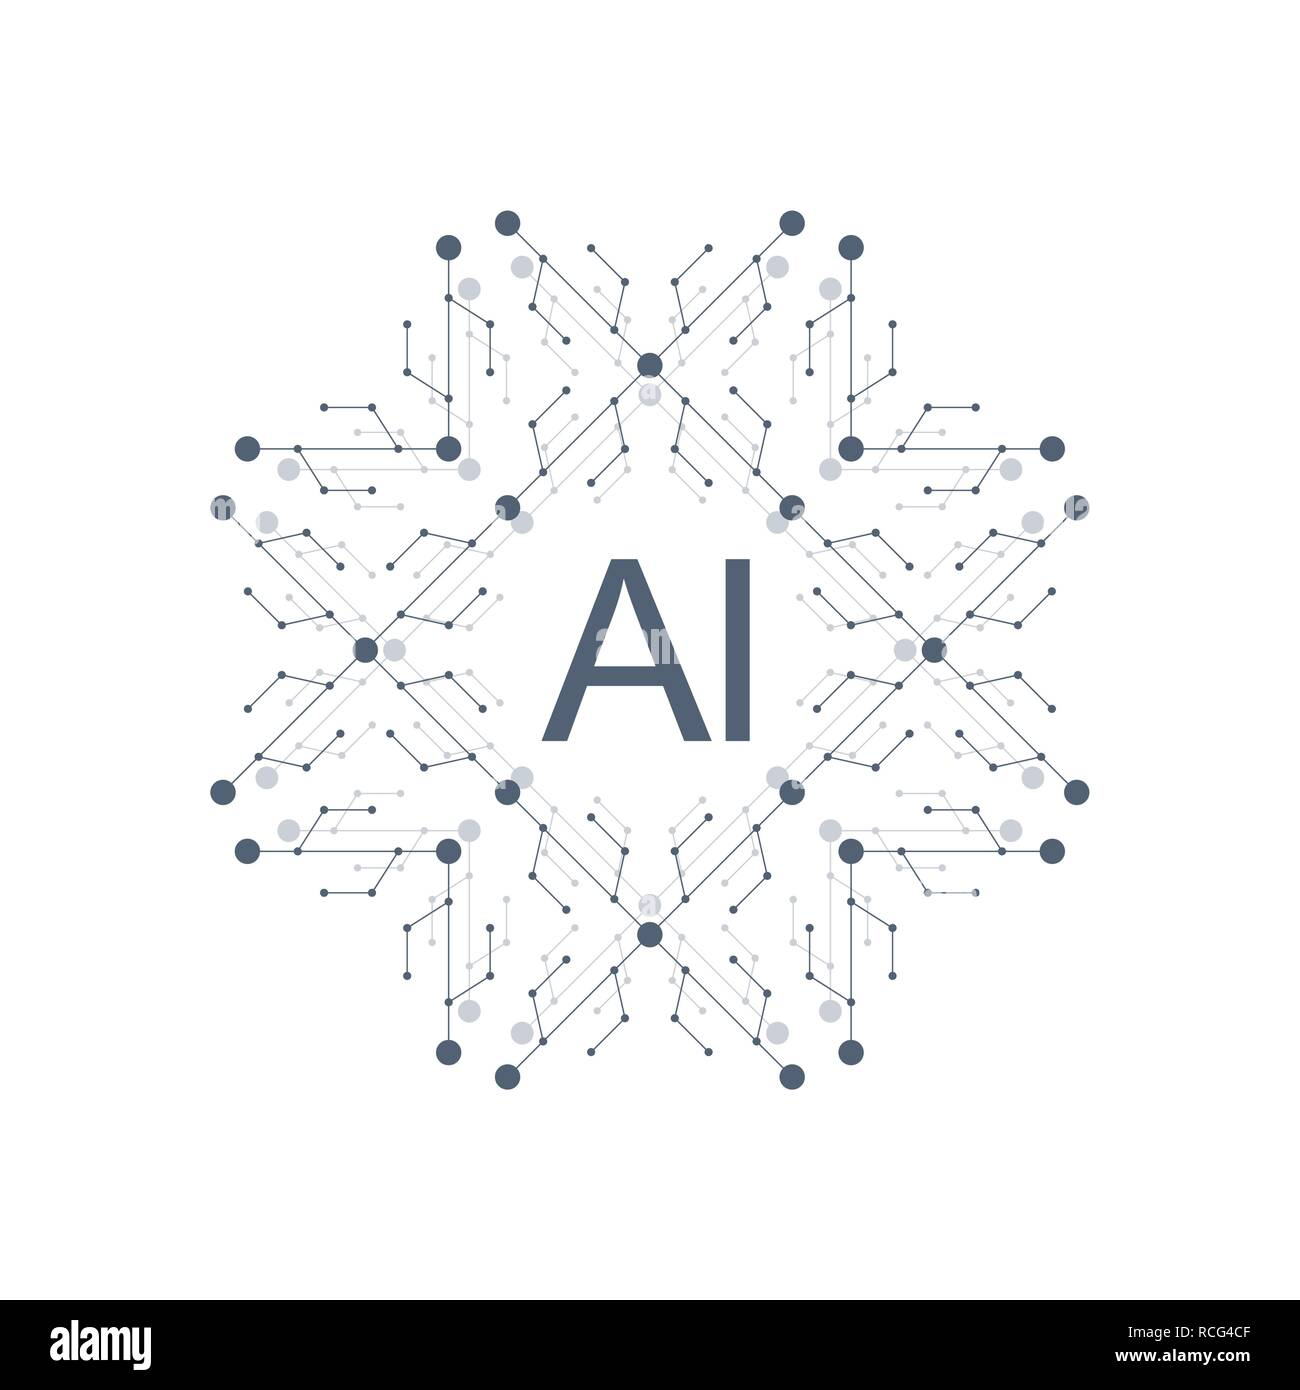 Artificial Intelligence Logo Icon Vector symbol AI. Deep Learning and Future Technology Concept Design. - Stock Image